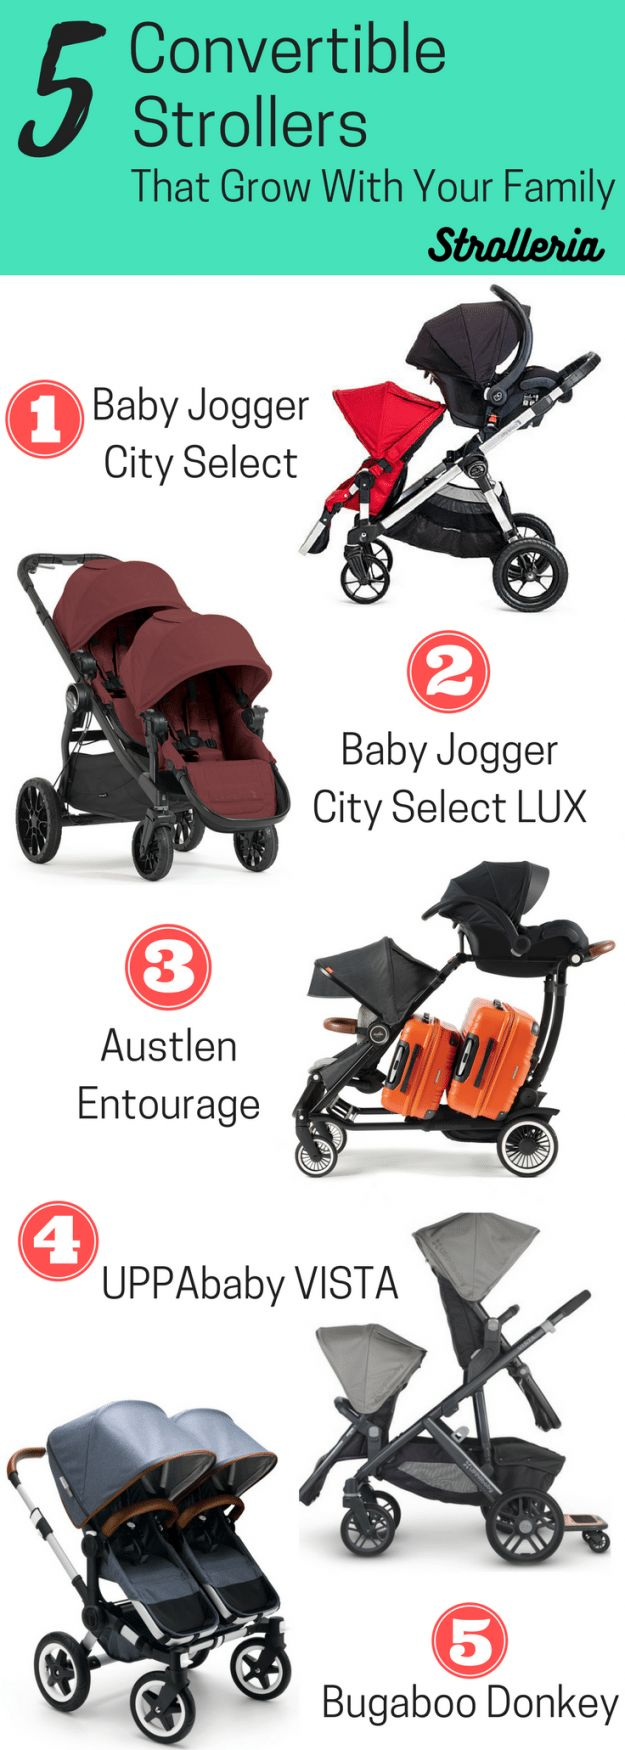 Strolleria compares the five best convertible strollers